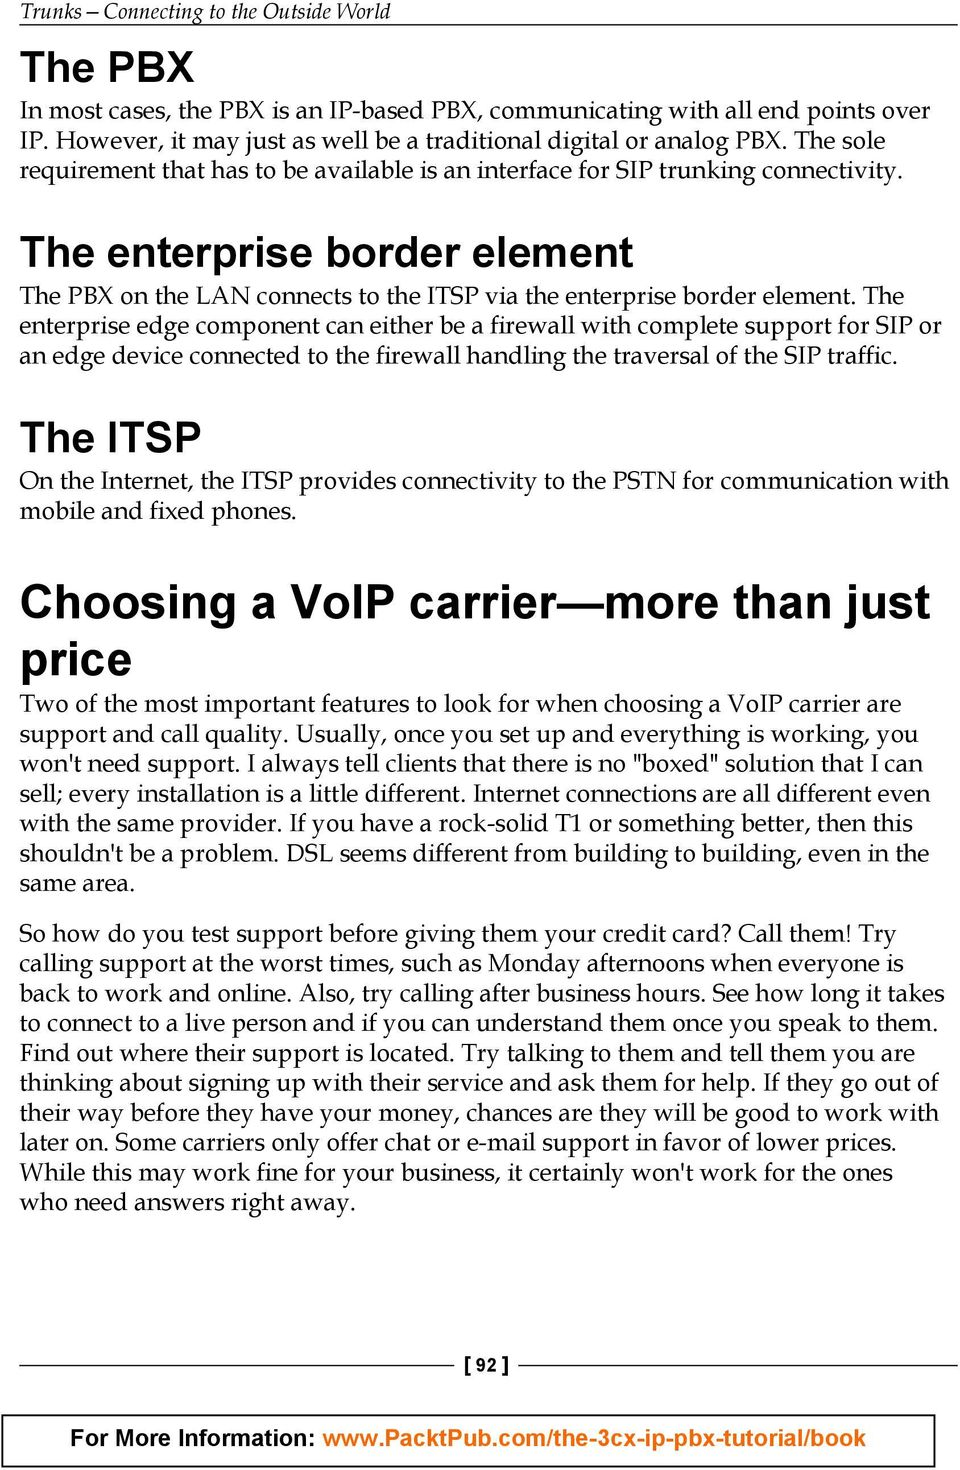 The enterprise border element The PBX on the LAN connects to the ITSP via the enterprise border element.